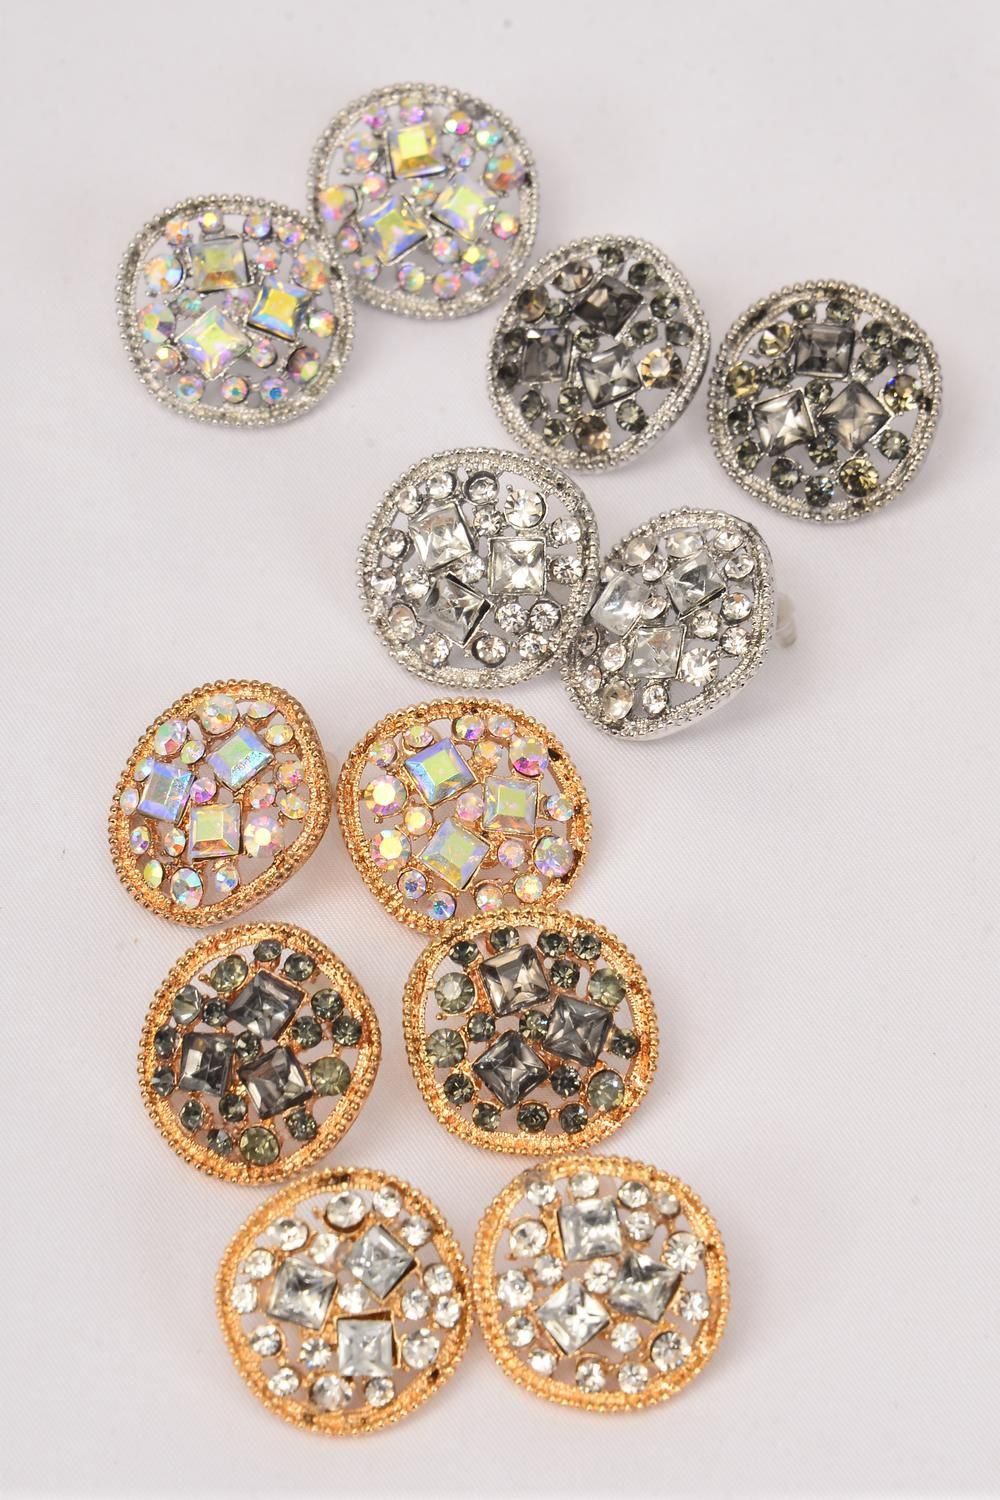 "Earrings Metal Rhinestone Gold & Silver Asst/DZ **Post** Size-1"",2 of each Color Asst,Earring Card & OPP Bag & UPC Code"